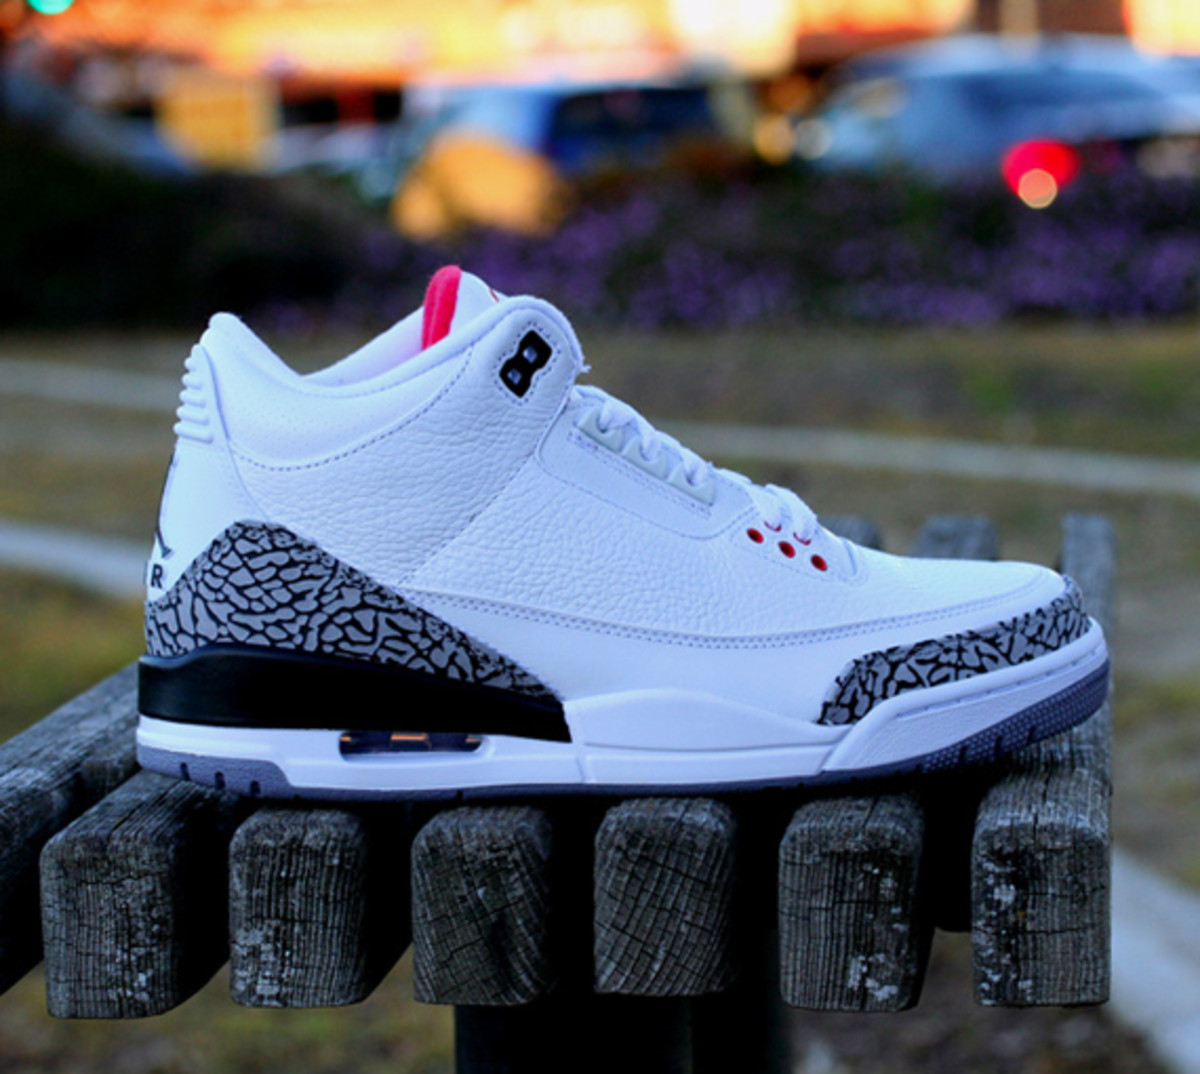 air-jordan-iii-3-white-cement-grey-02